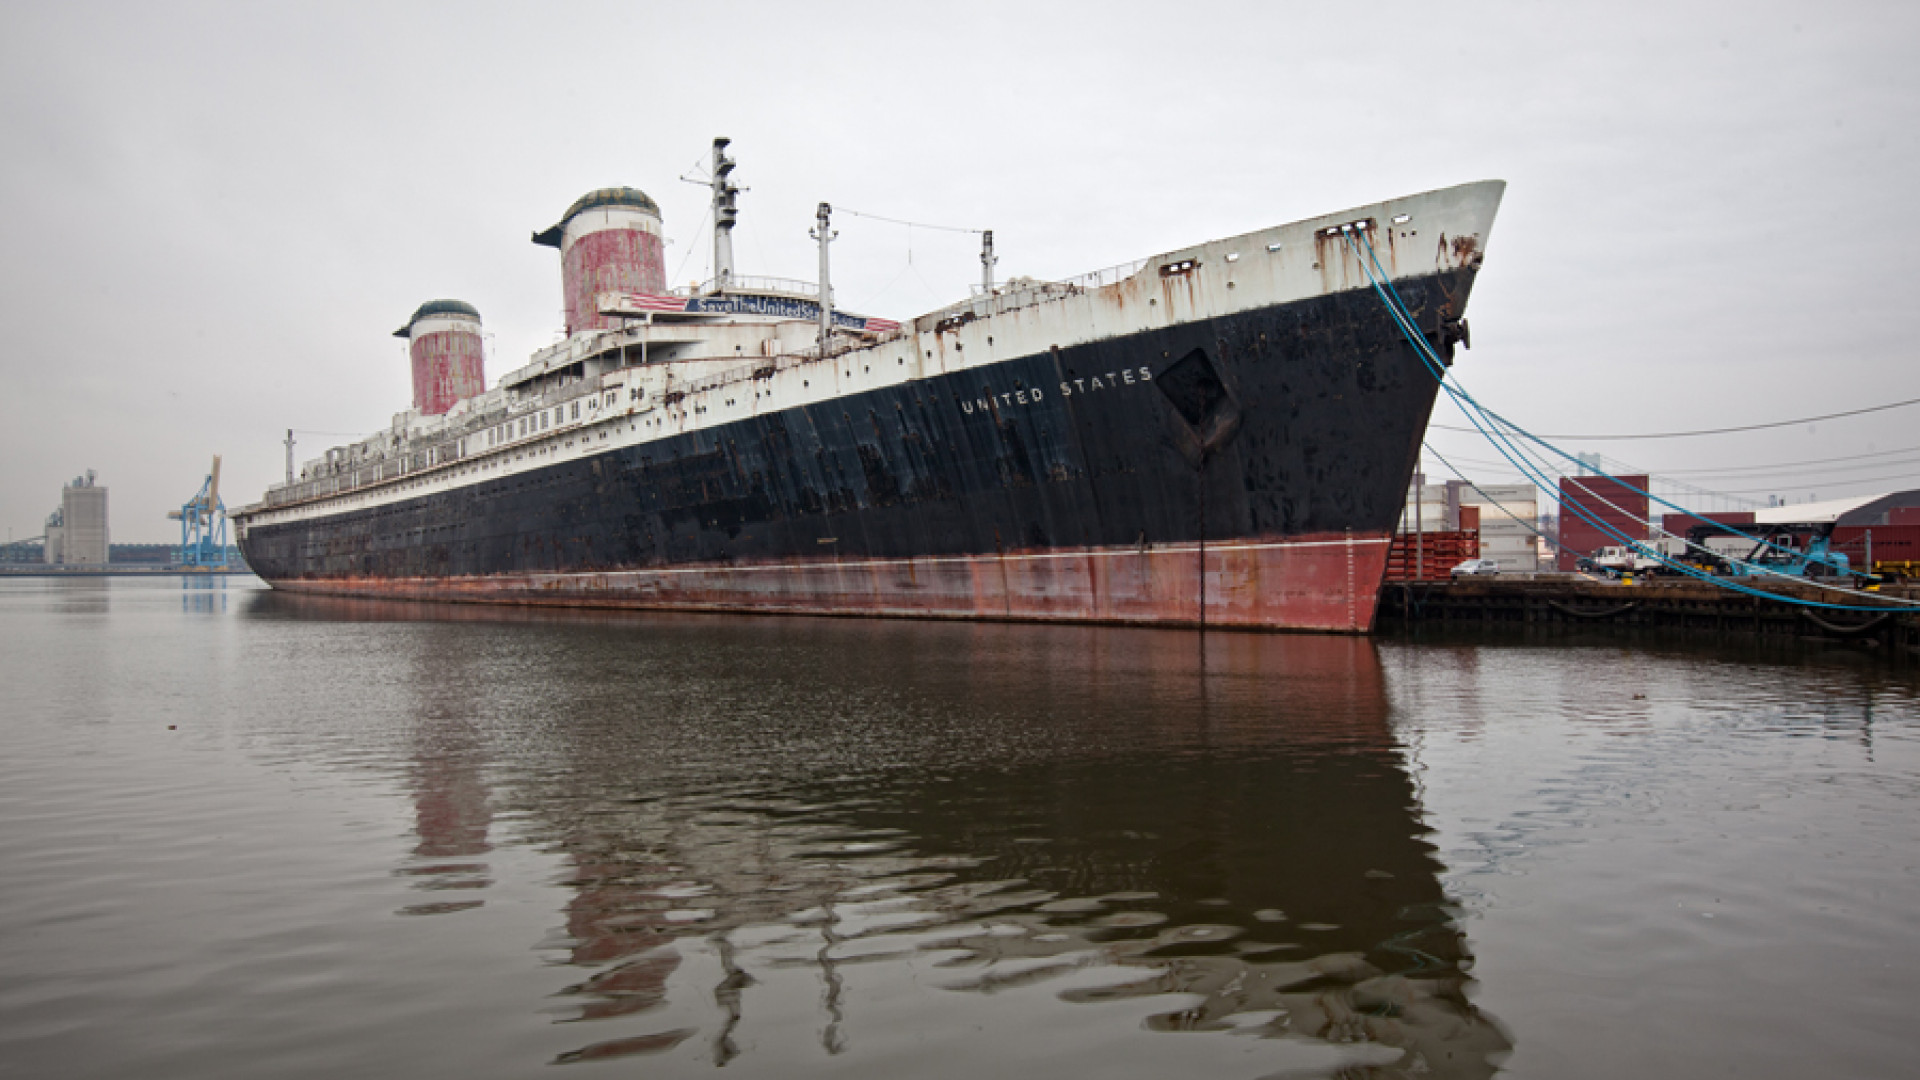 Full exterior shot of the SS United States in harbour